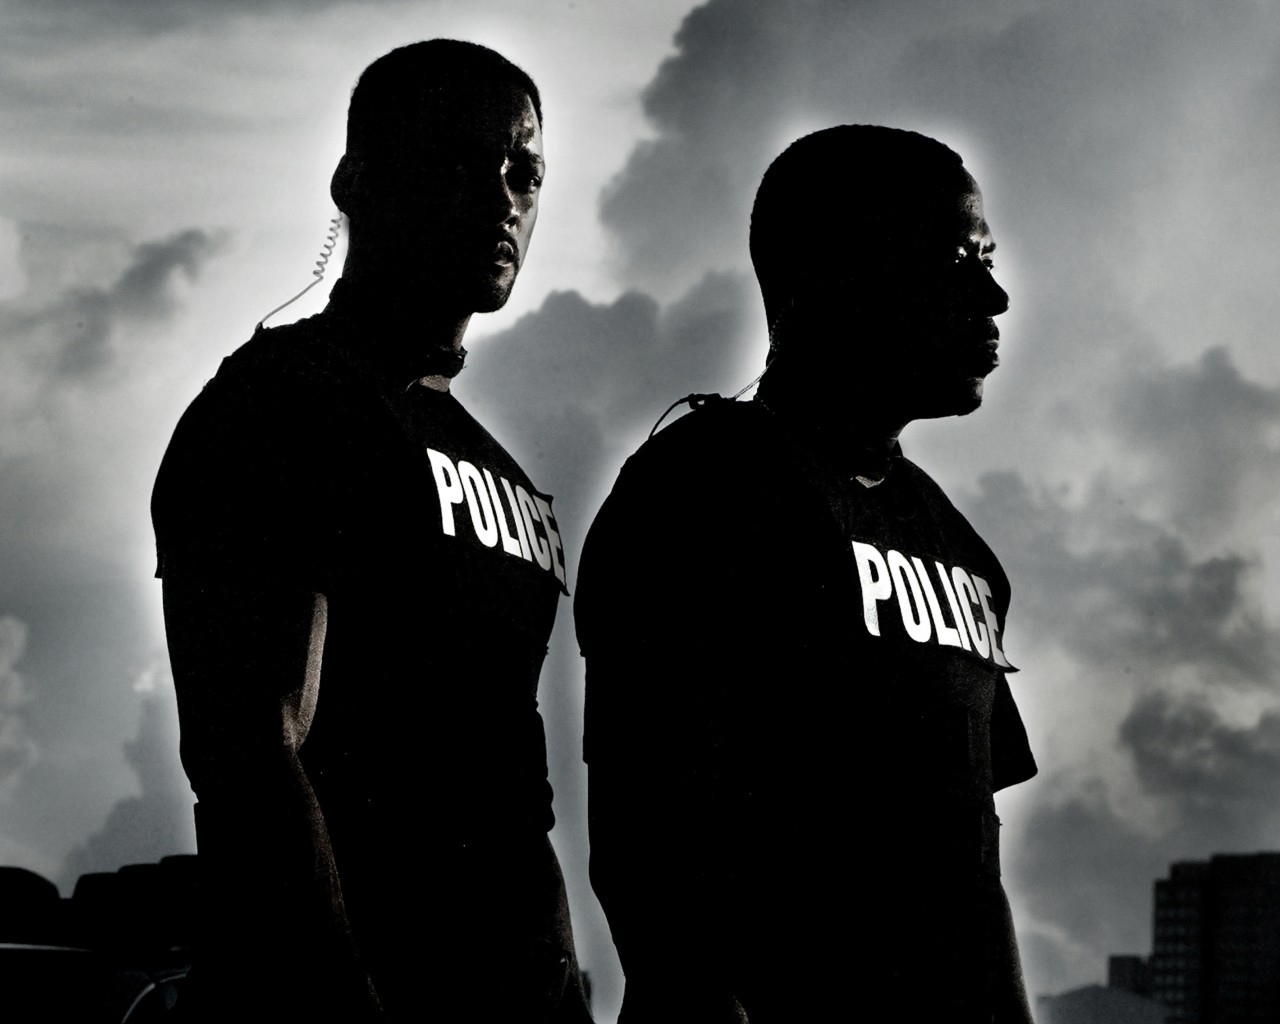 Bad Boys 2 Poster for 1280 x 1024 resolution